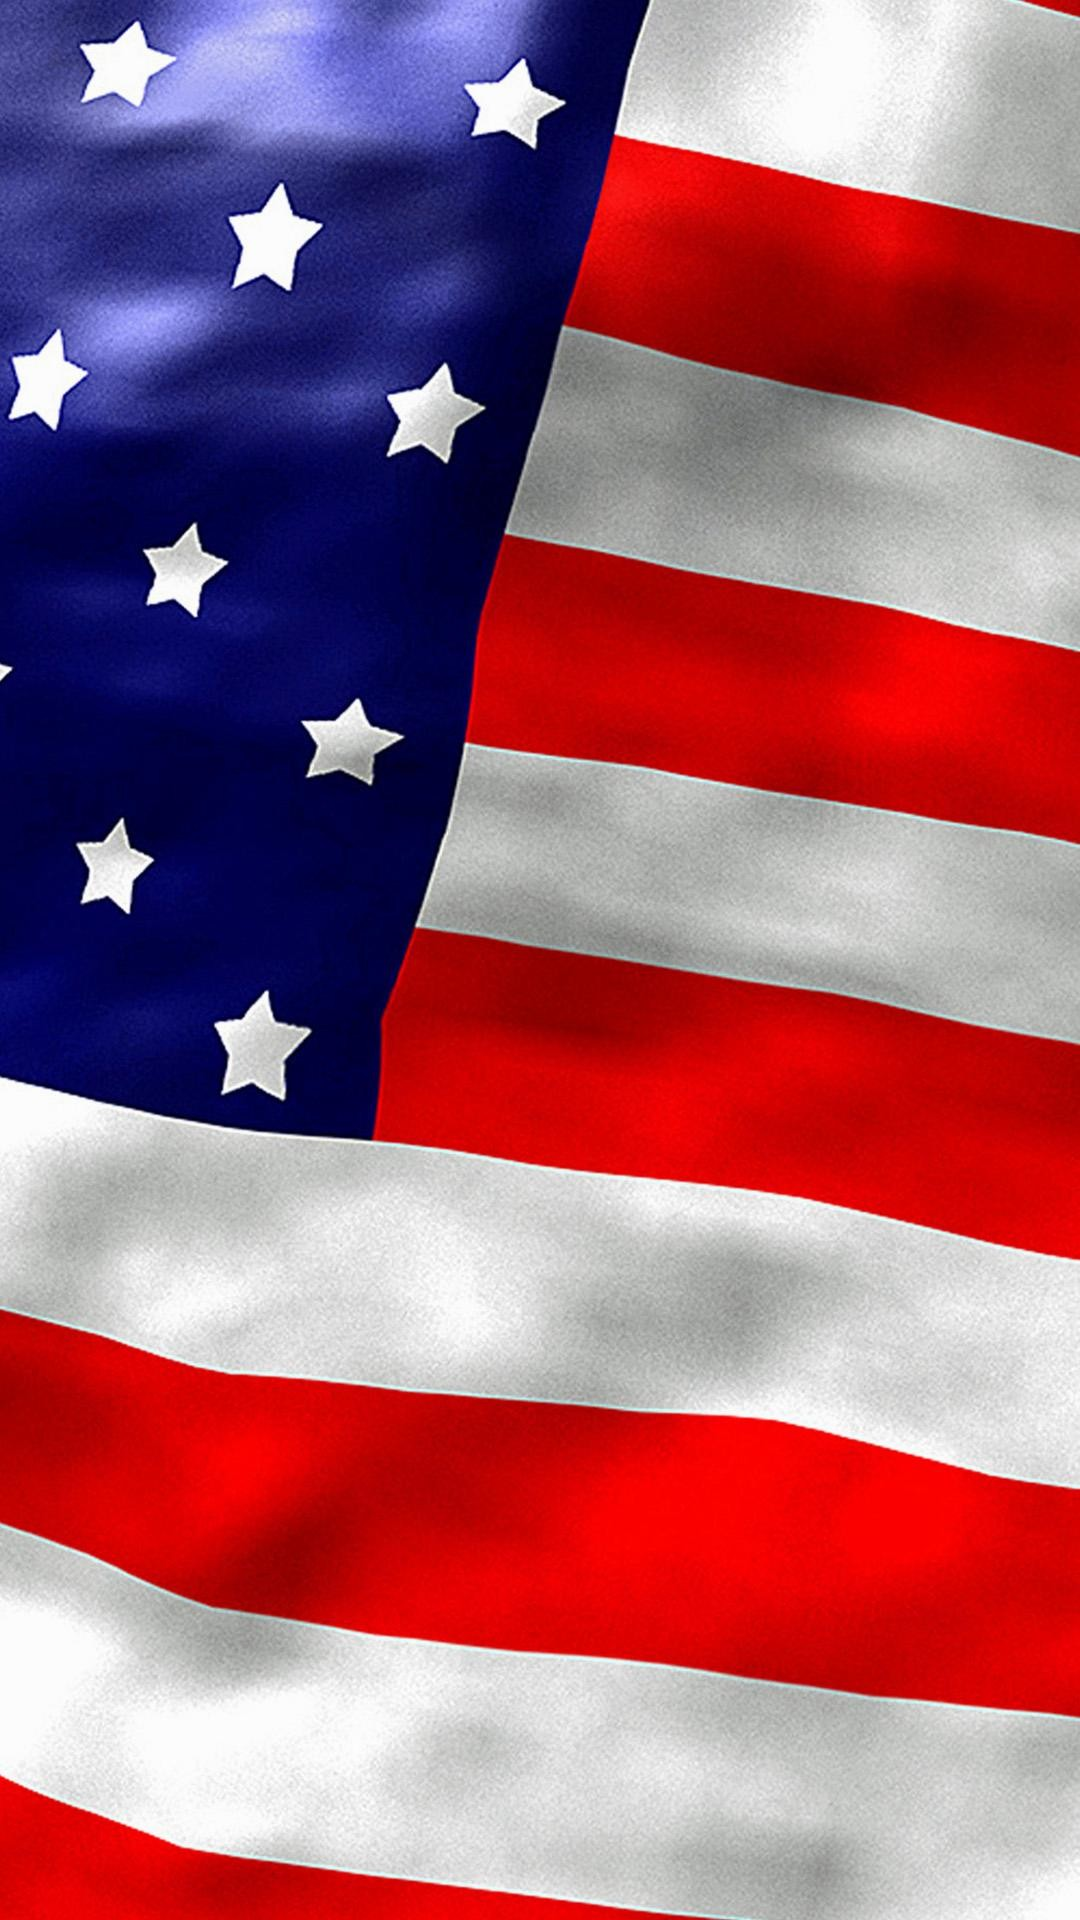 wallpaper.wiki-American-Flag-Iphone-Background-Free-Download-